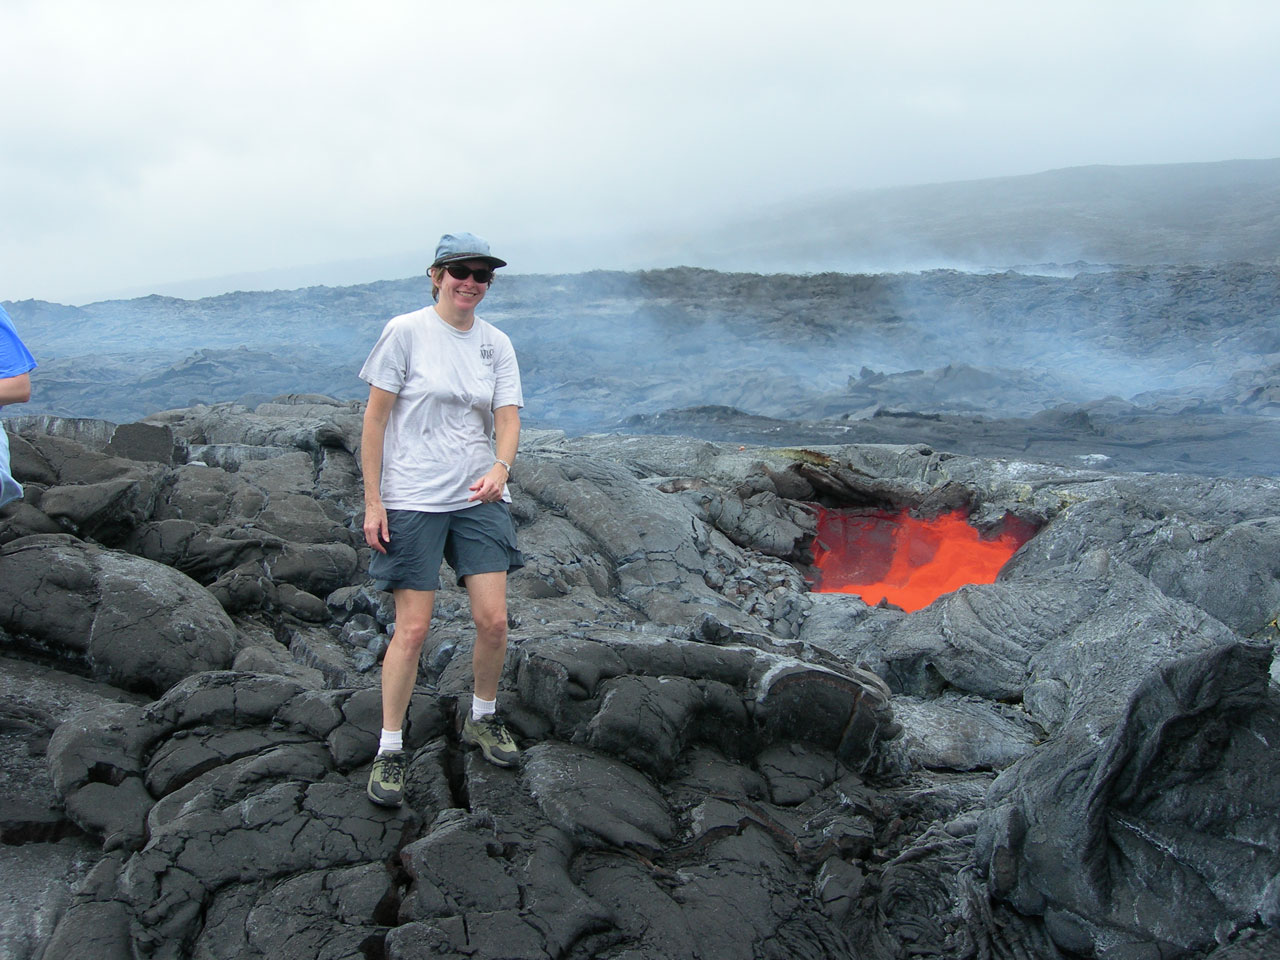 Woman standing next to active volcano vent glowing with hot lava.